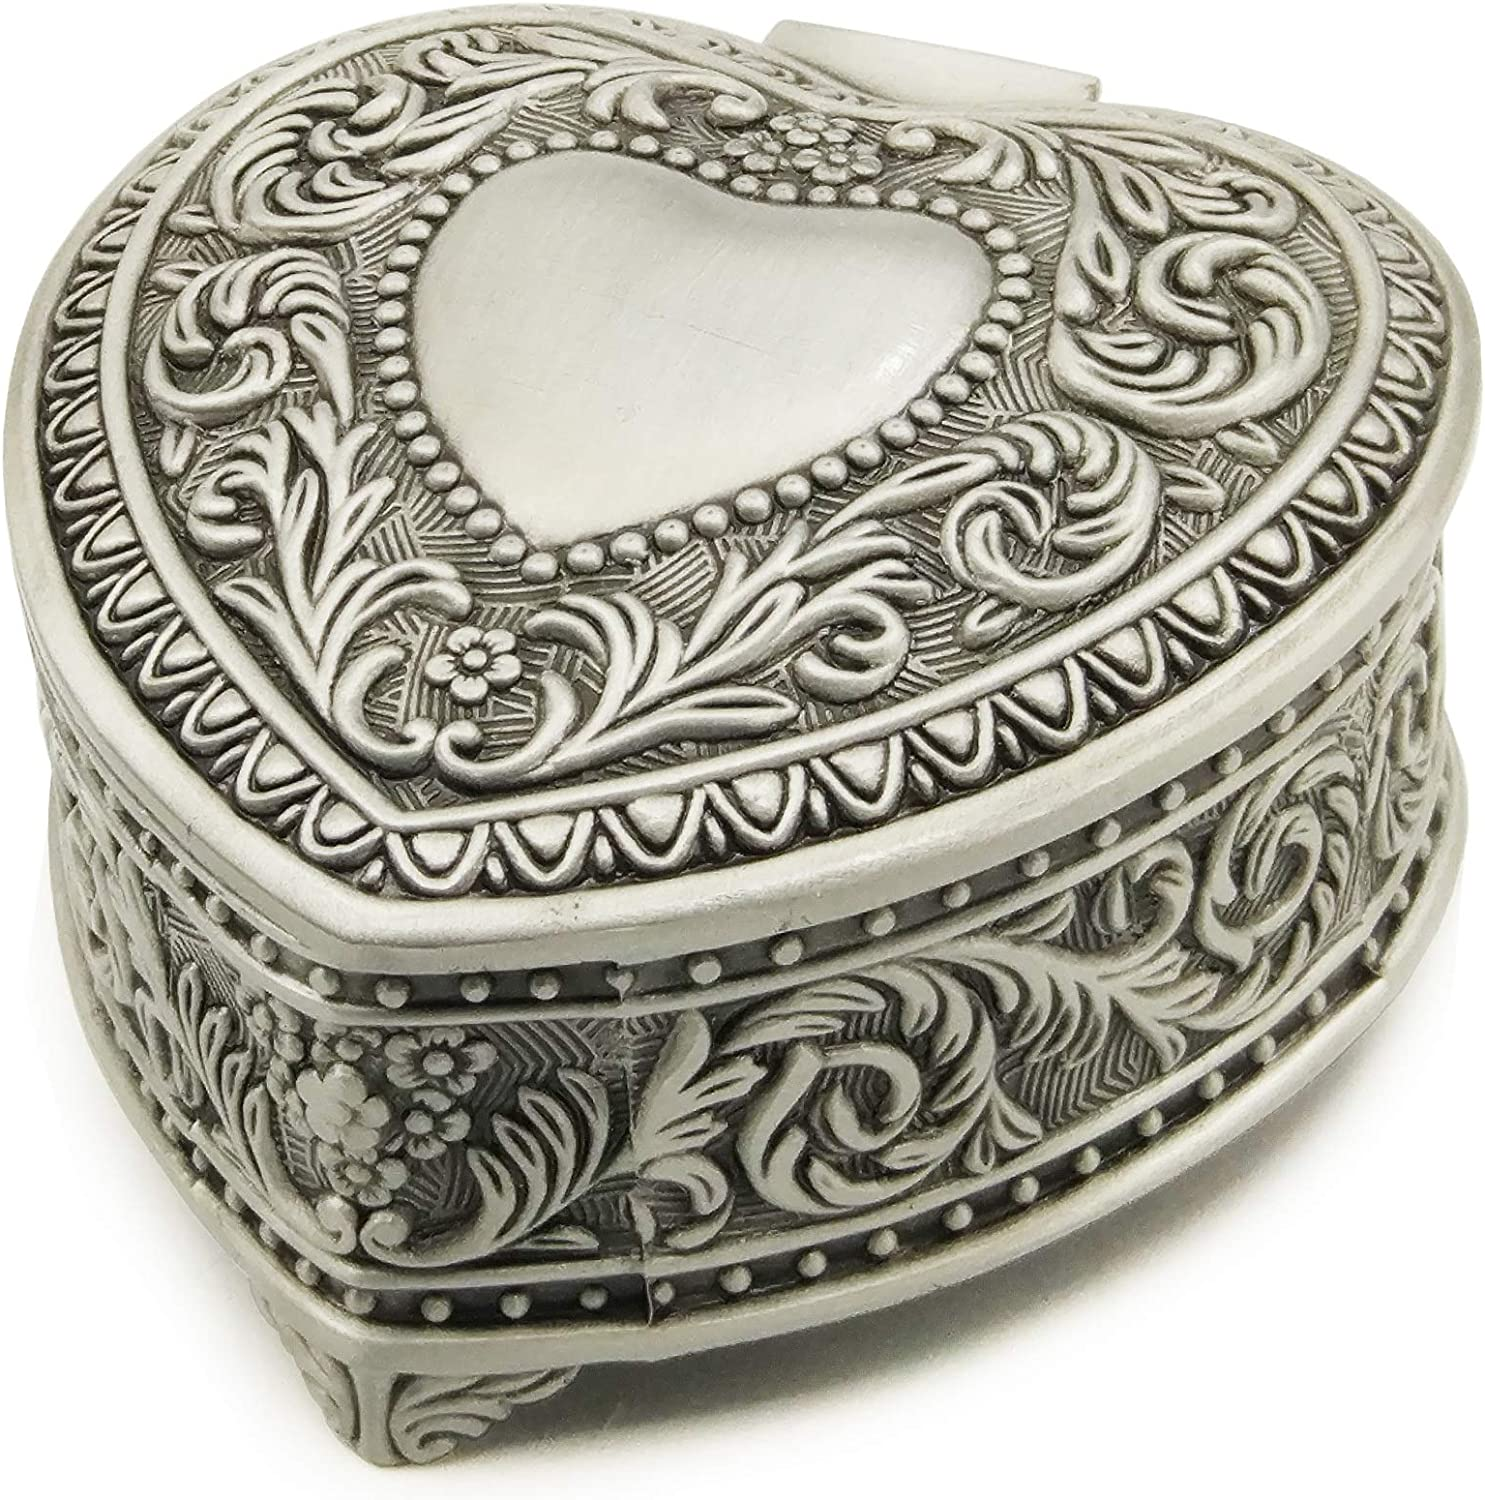 HearShapedMetalMHWGo, My heart will go on falado Wingostore Emboss Alloy Metal Music Box Wind Up and Golden Movement Music Box for Christmas//Birthday//Valentines Day